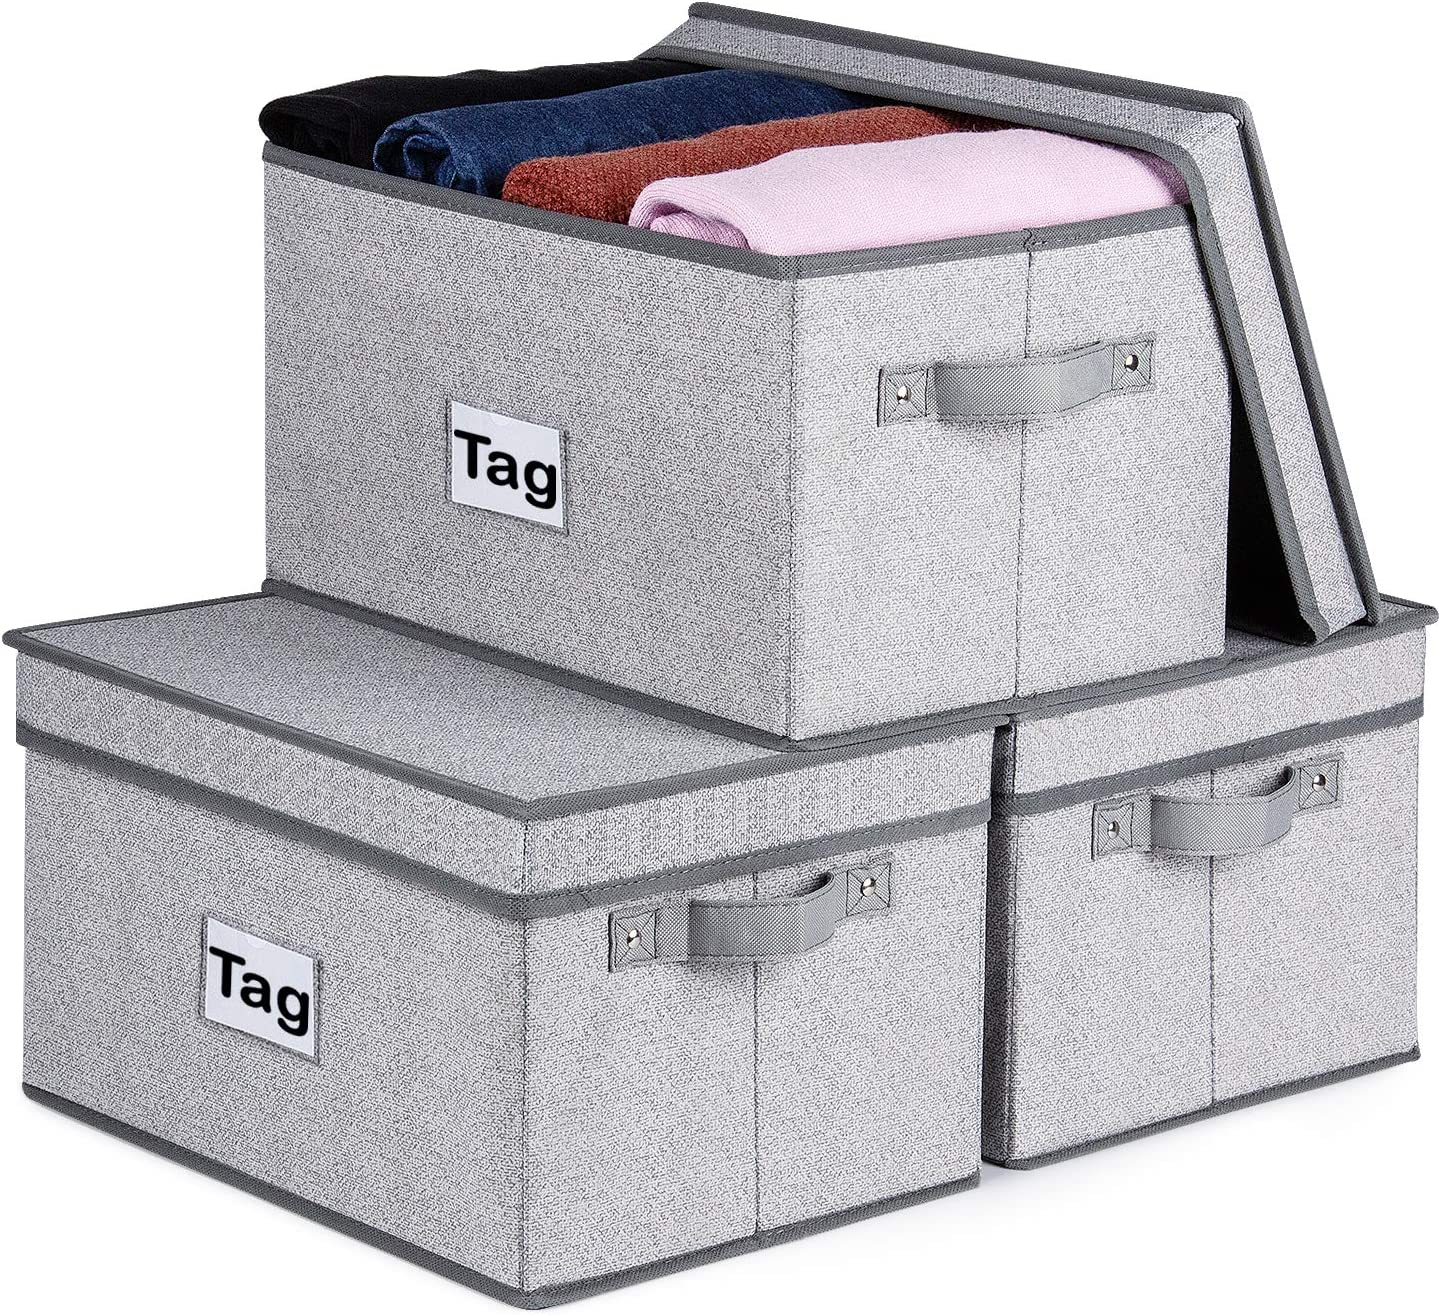 Kntiwiwo Large Storage Bins for Closet Shelves withLids 3 Pack Fabric Storage Box for Organizing Foldable StorageBaskets for Shelf with Label for Home|Office , Grey